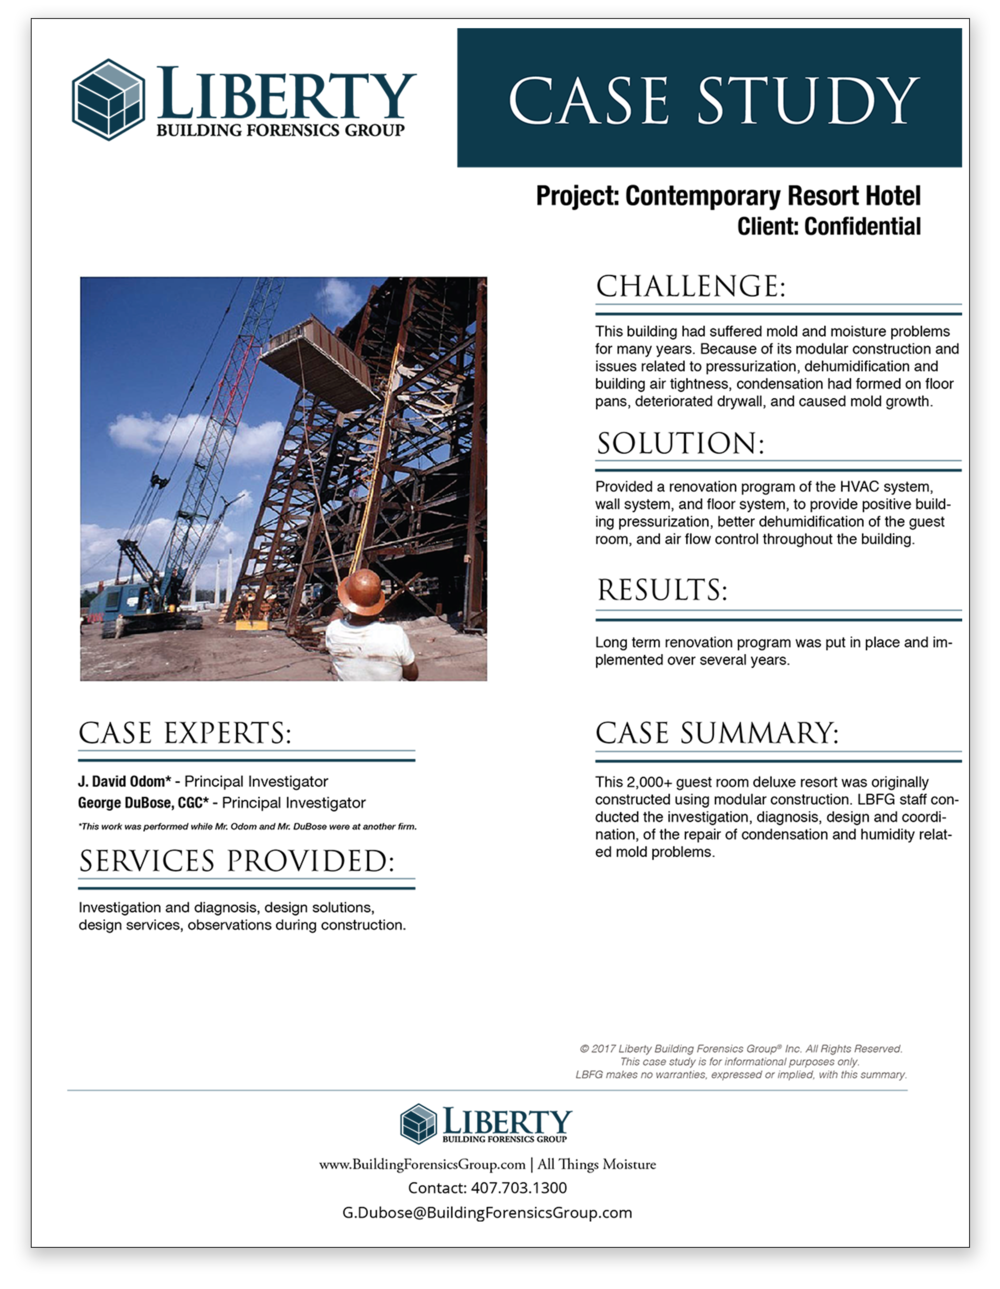 Case Study - Contemporary Resort Hotel_042017@2x.png